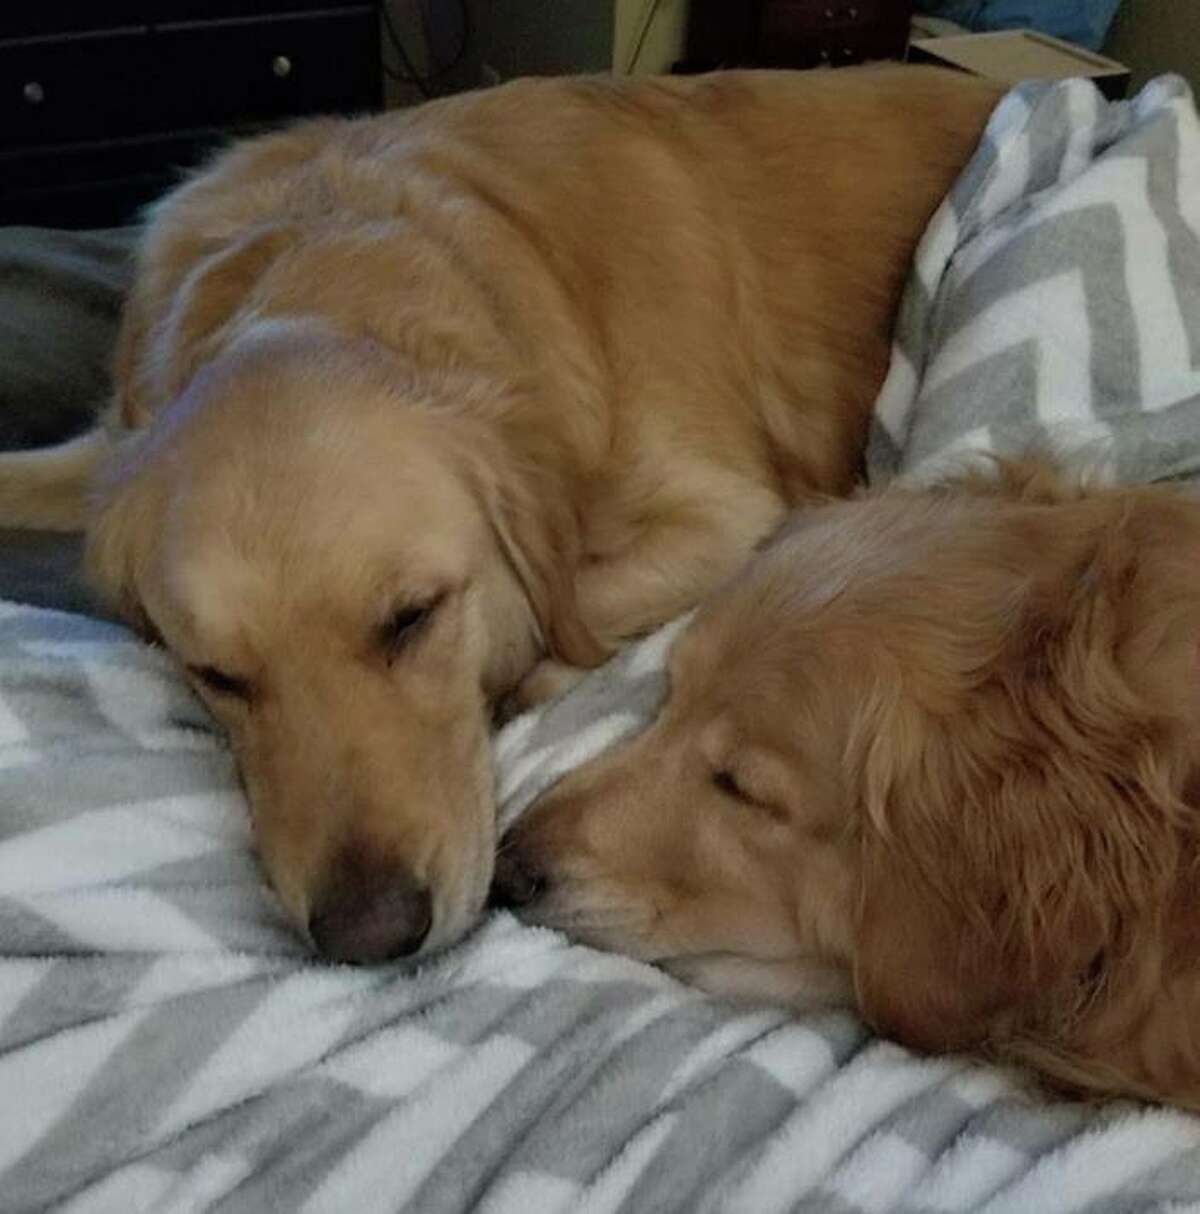 A San Antonio couple is offering a $7,000 reward for the return of their two missing golden retrievers that have been missing since June of last year.